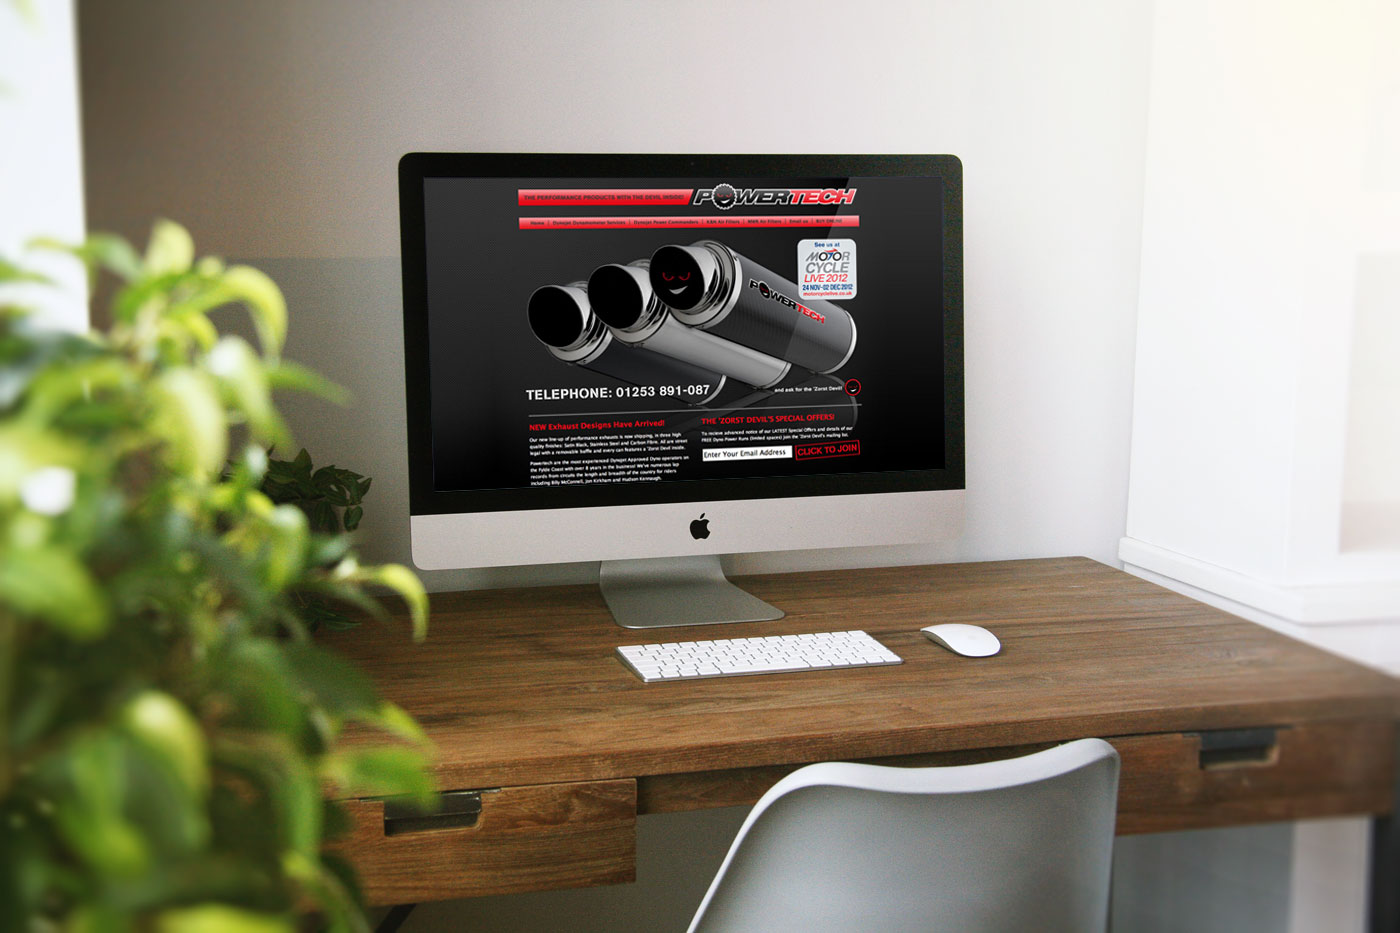 Powertech Website Design